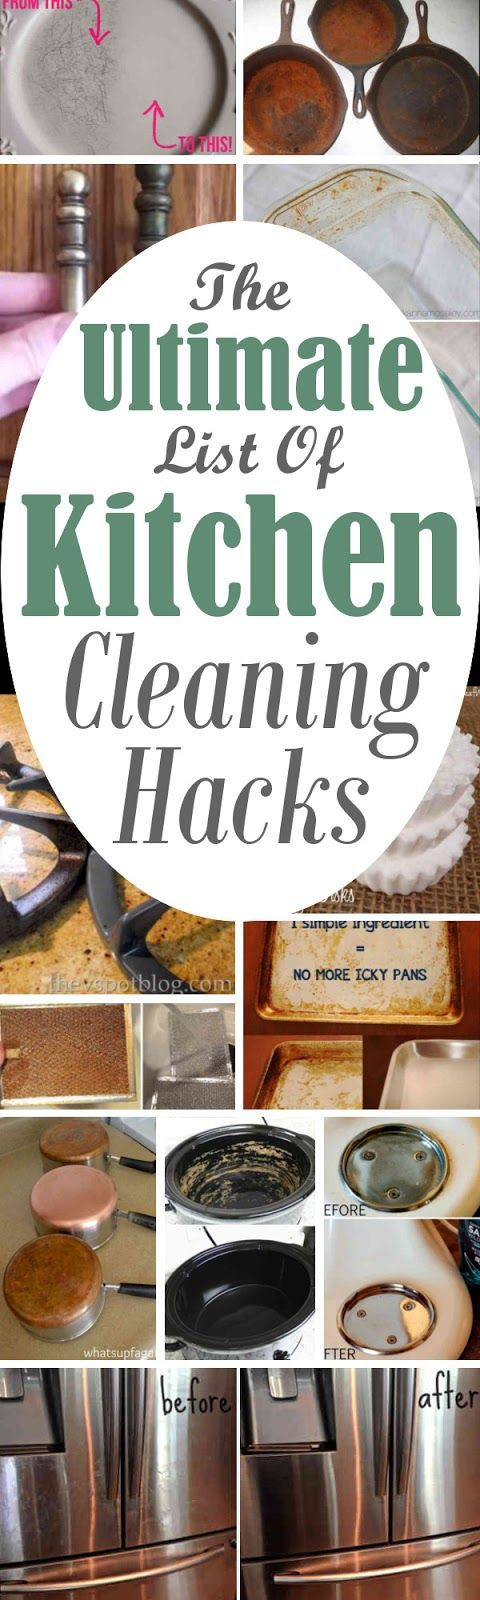 The Ultimate List Of Kitchen Cleaning Hacks. #LifeHacks #Cleaning